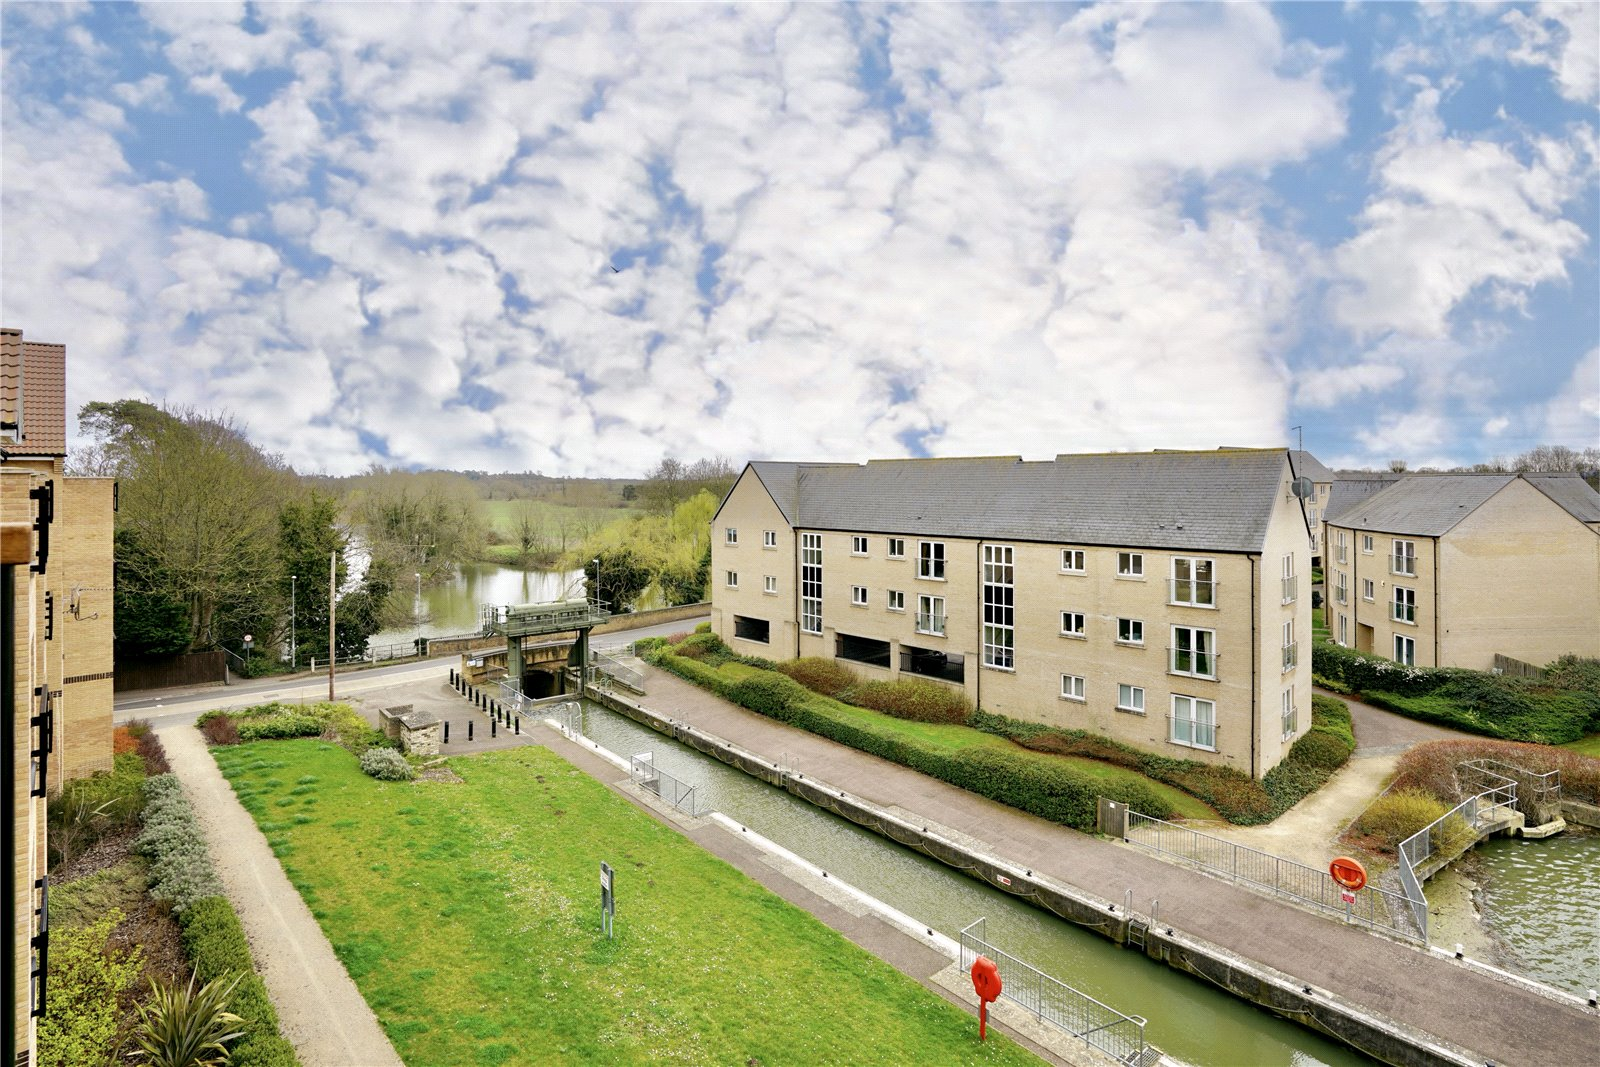 2 bed apartment for sale in Little Paxton, PE19 6SJ - Property Image 1